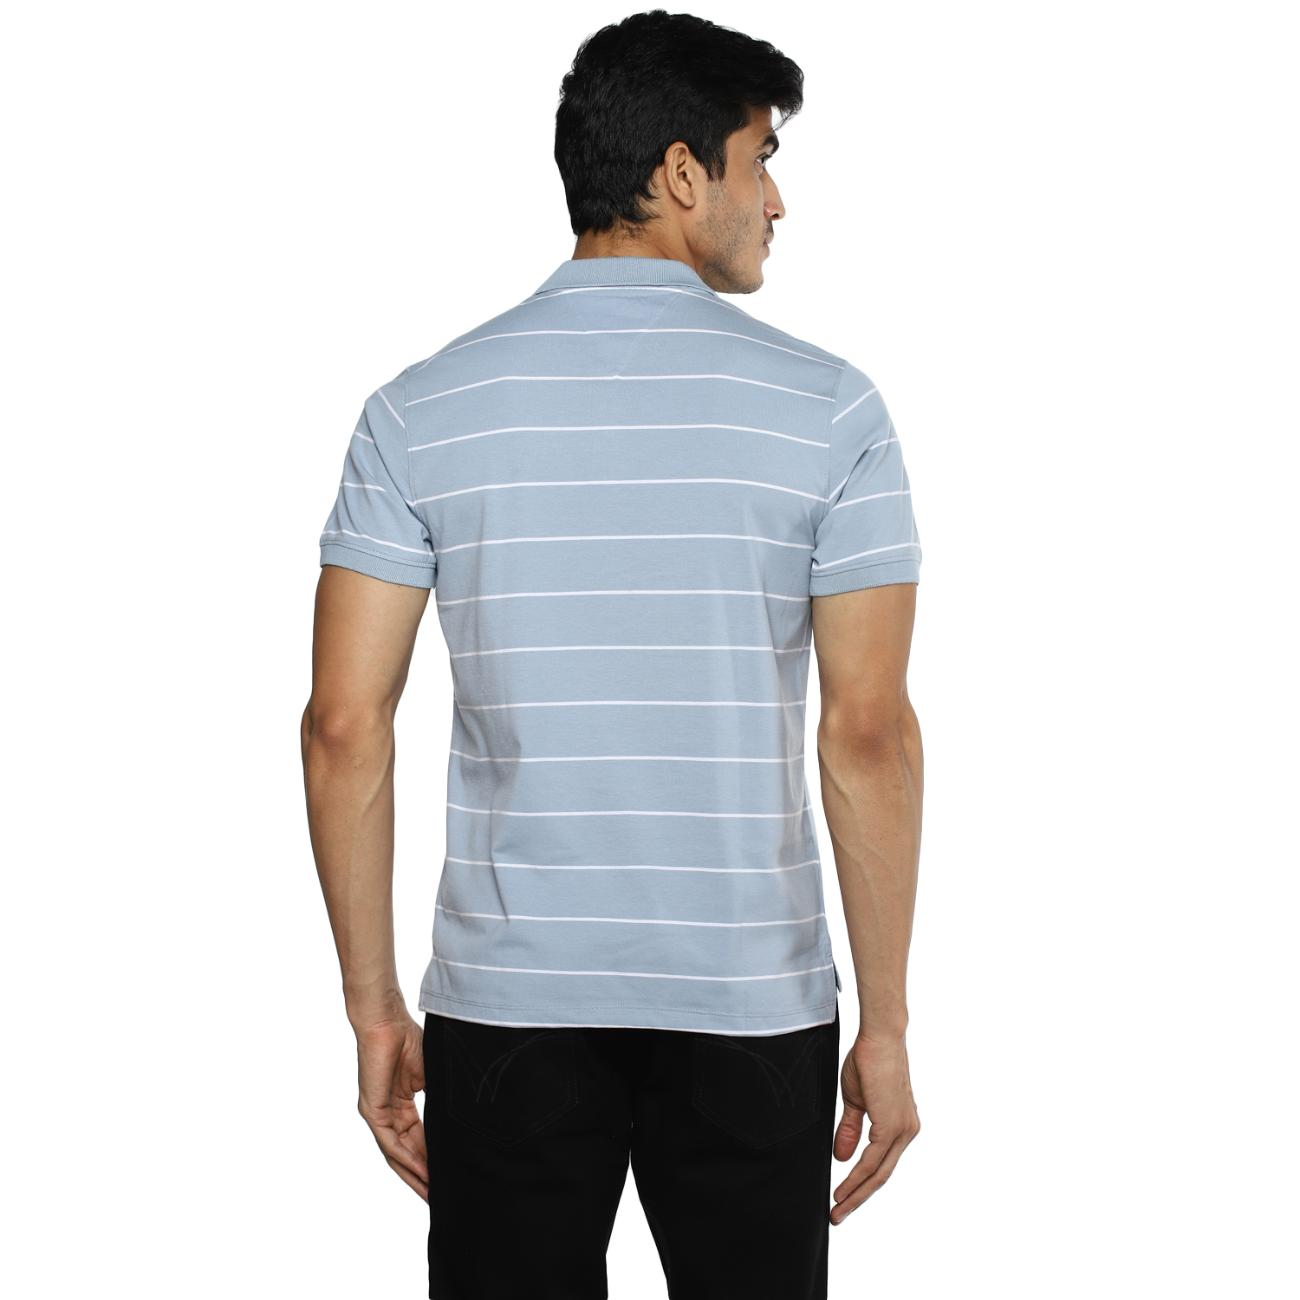 Fitted Tshirts fro Men